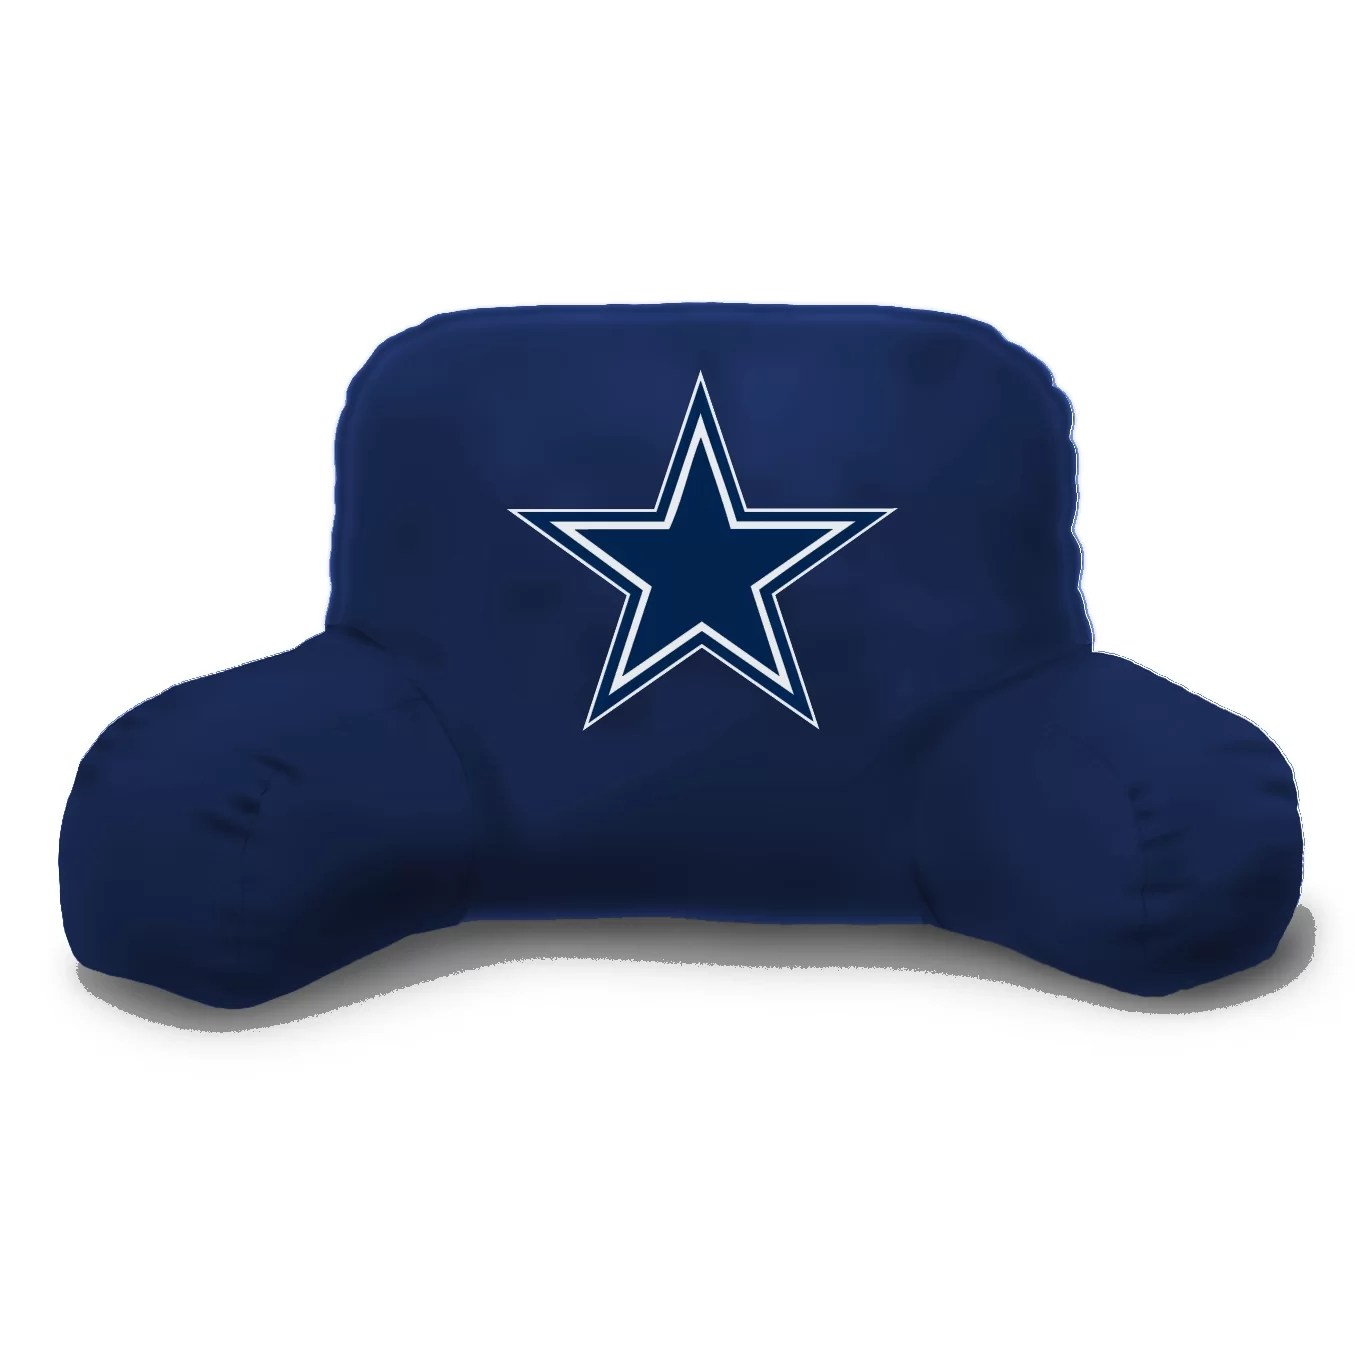 Northwest Co Nfl Dallas Cowboys Cotton Bed Rest Pillow